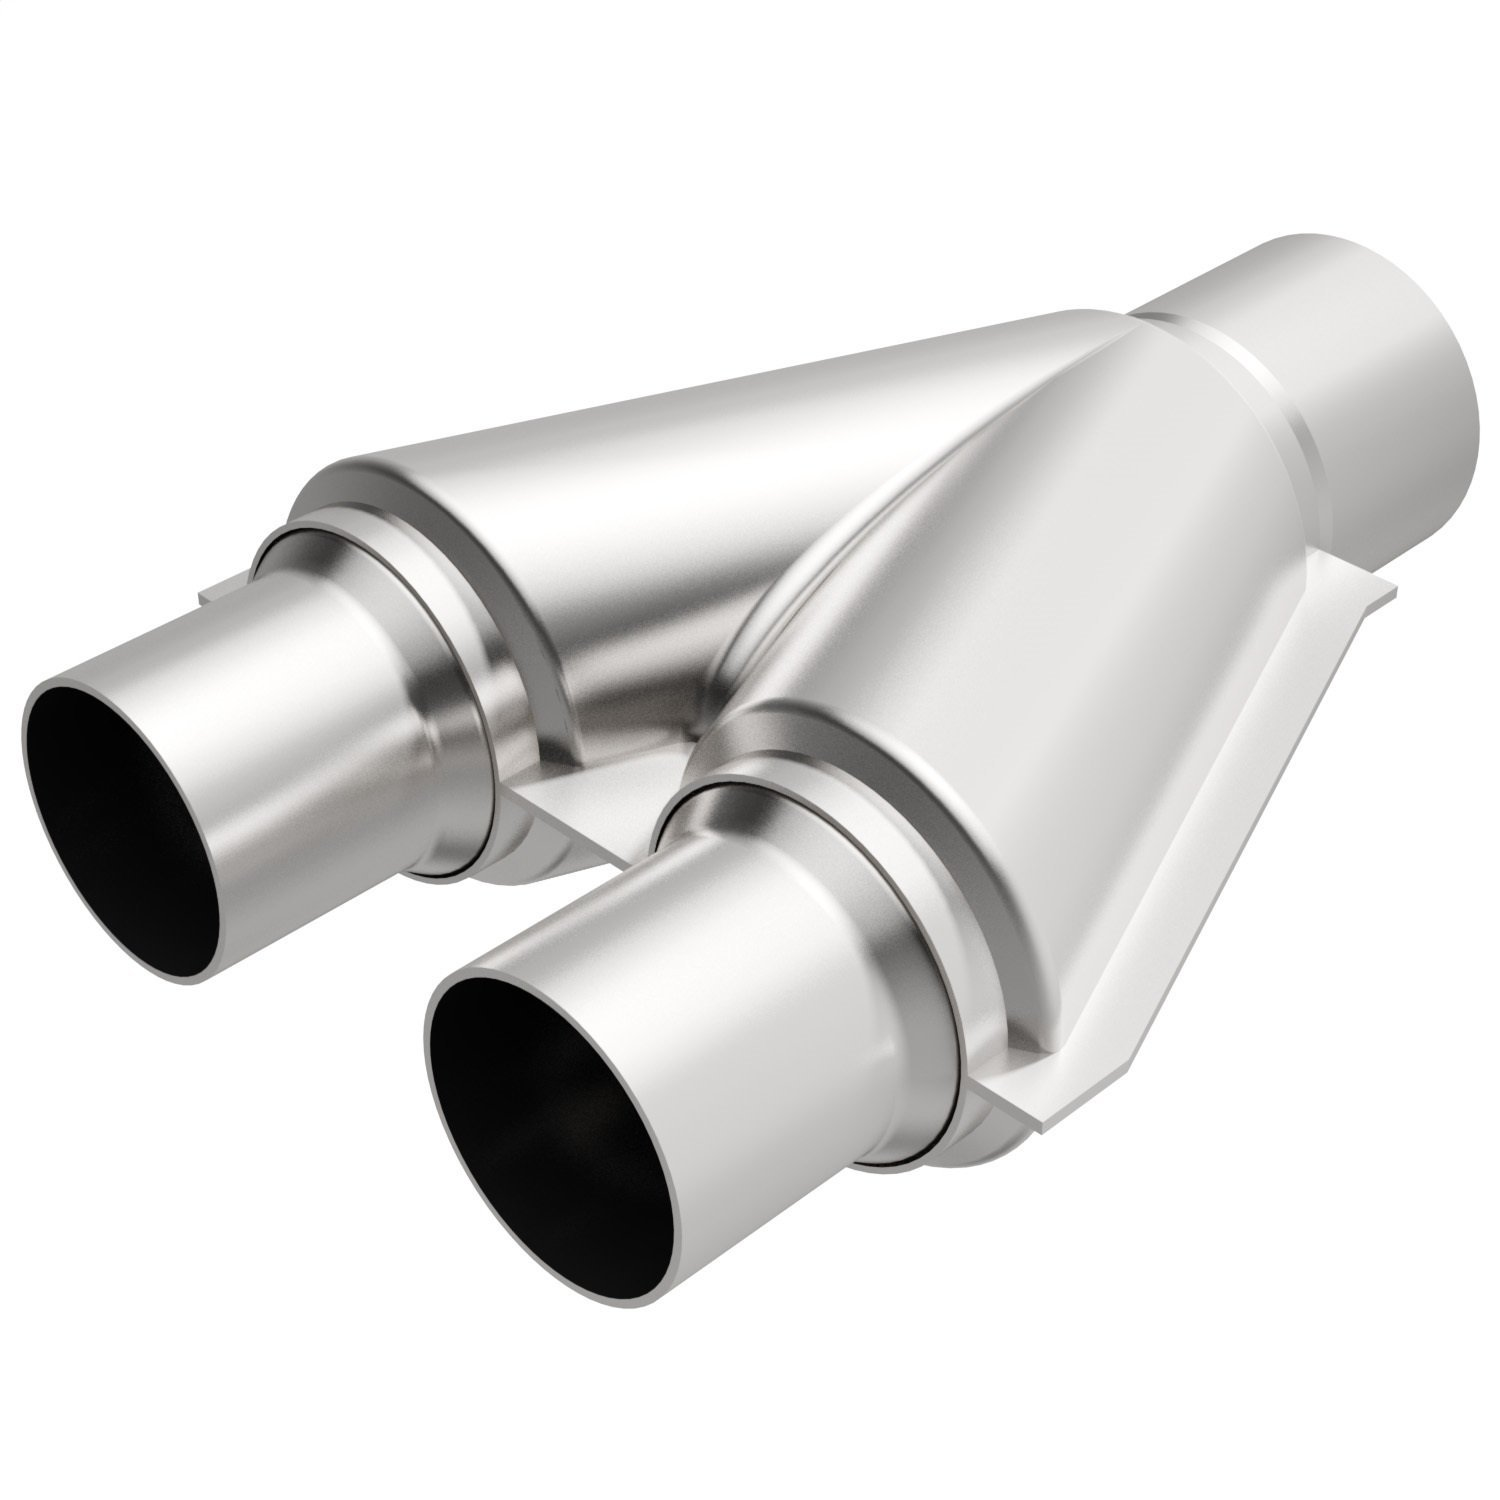 Magnaflow 10748 Stainless Steel Exhaust Y-Pipe